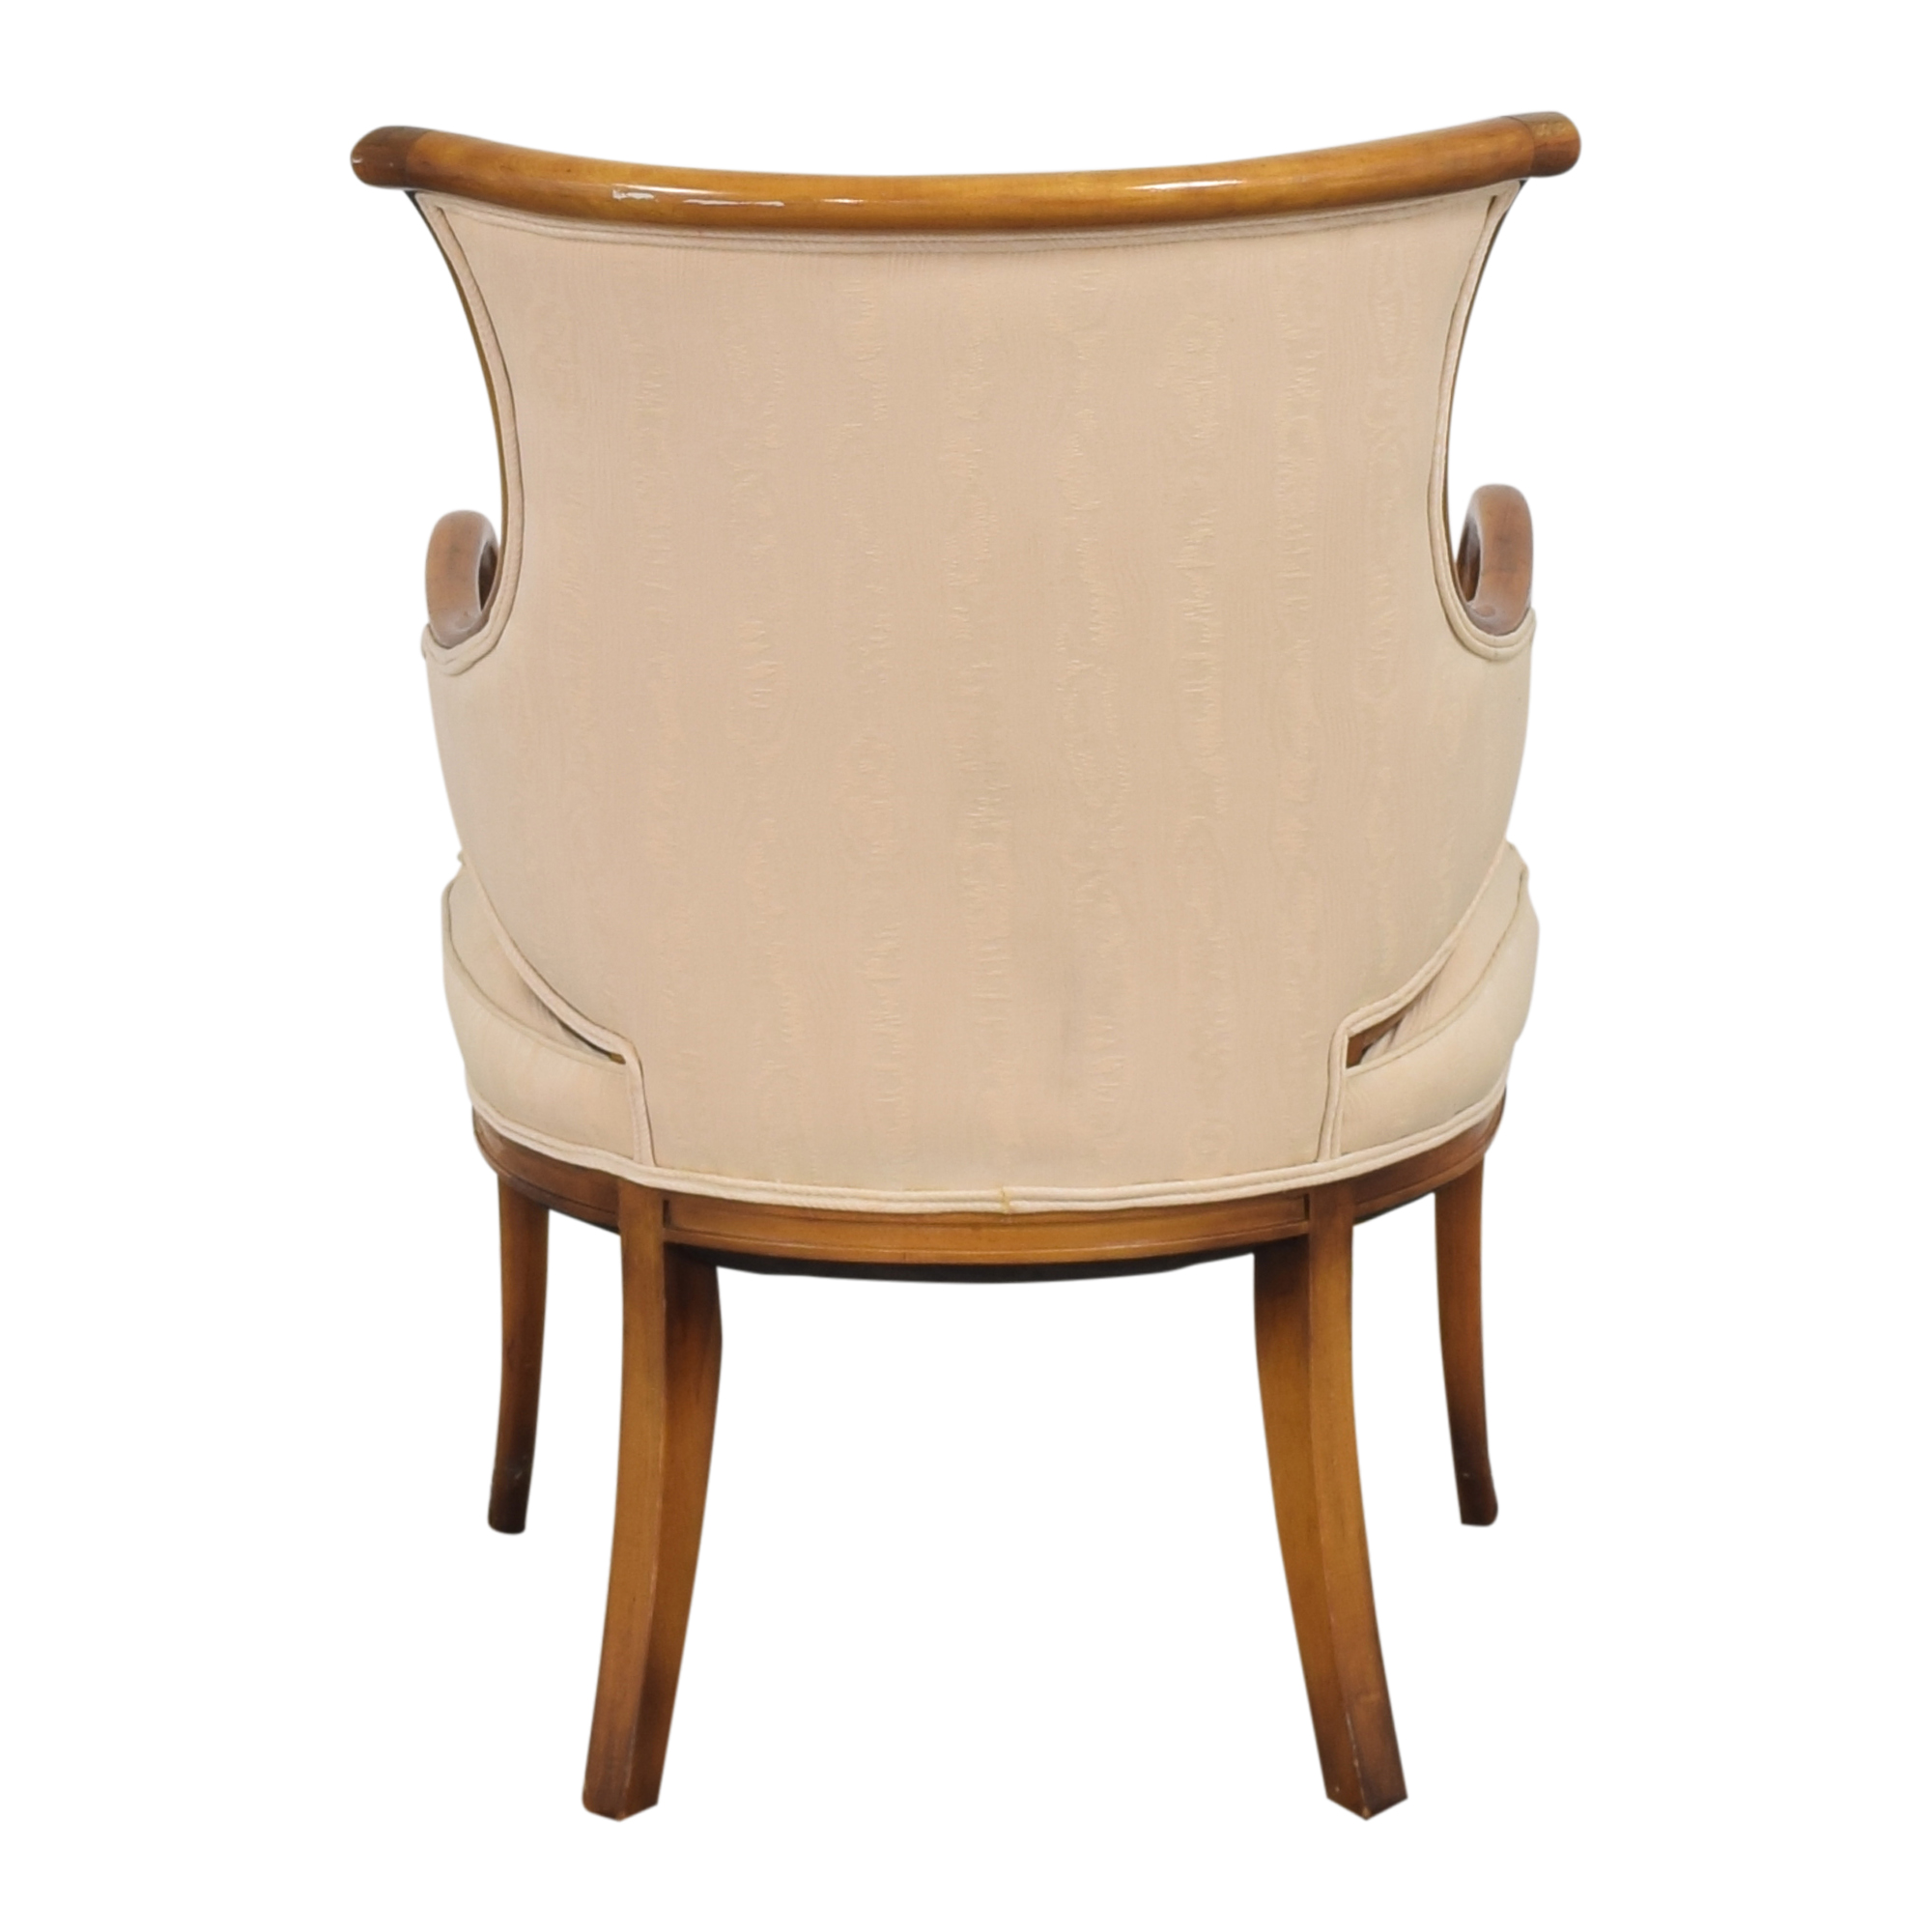 Decorative Upholstered Arm Chair price